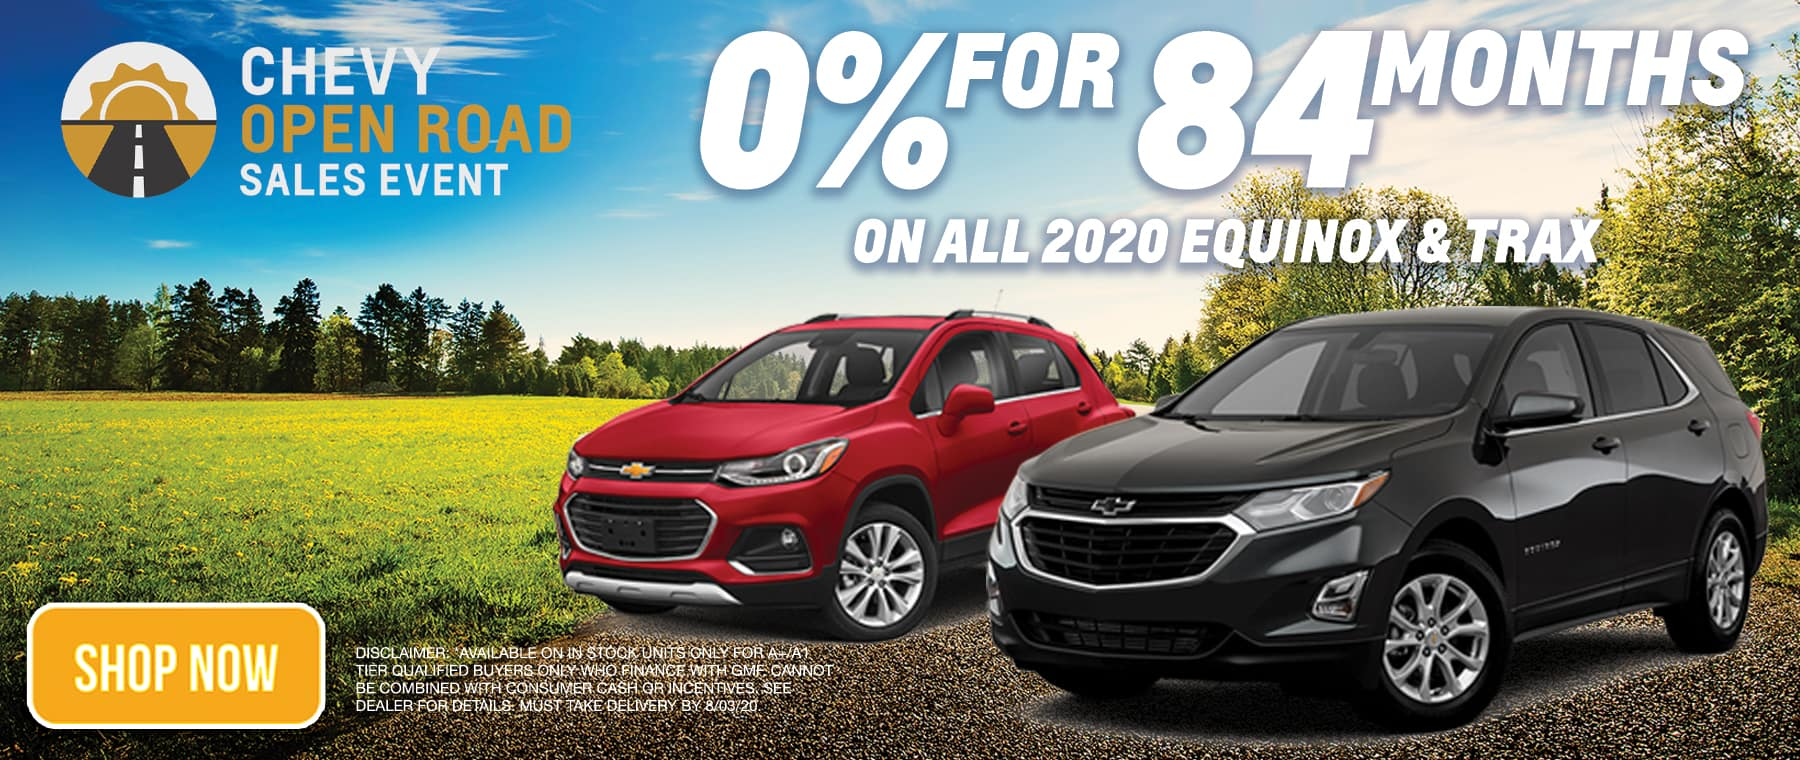 0% for 84 months on equinox and trax